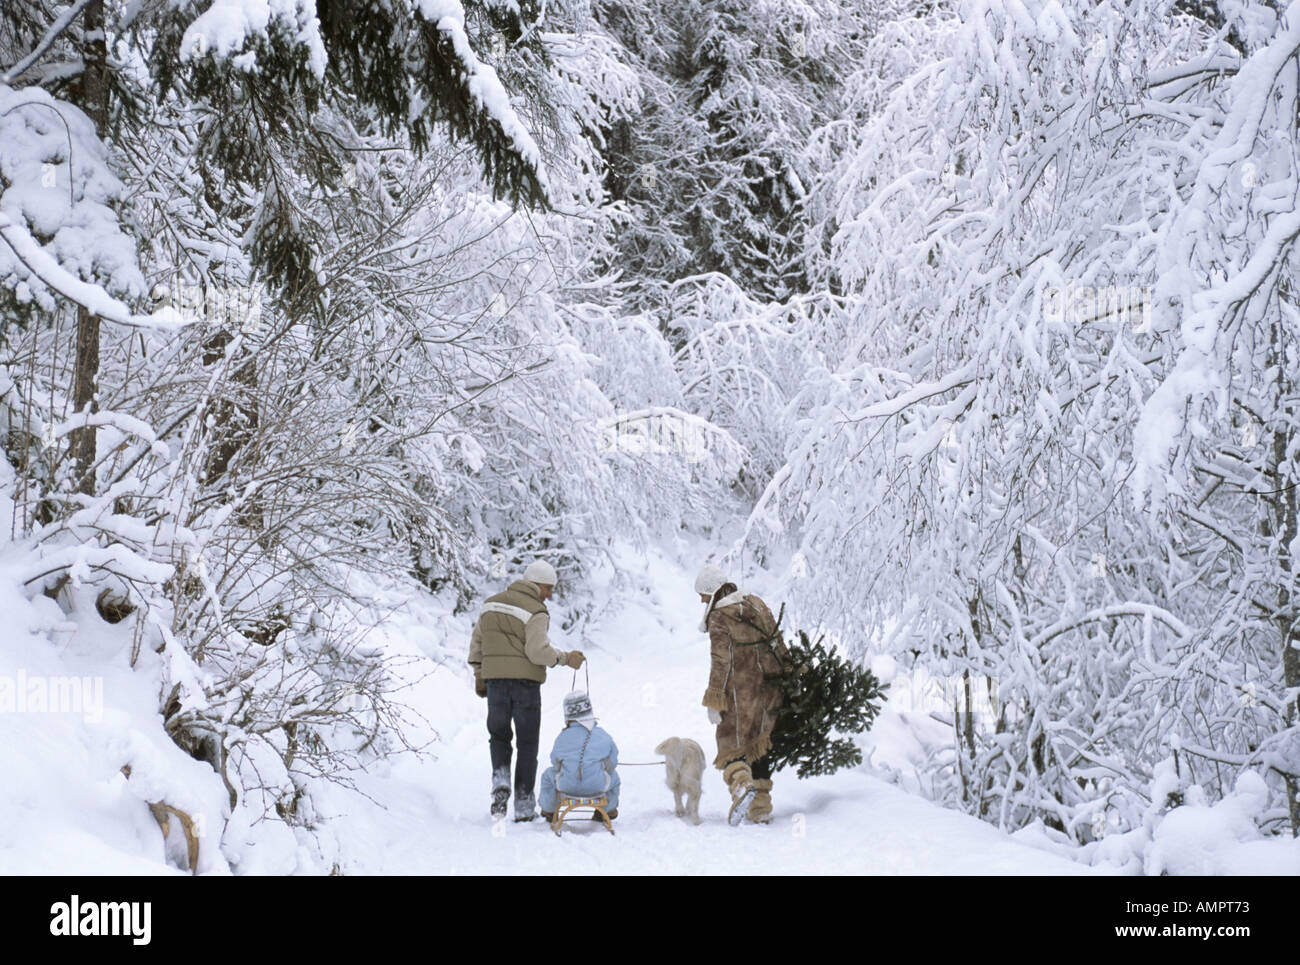 Family walking in snow, rear view - Stock Image